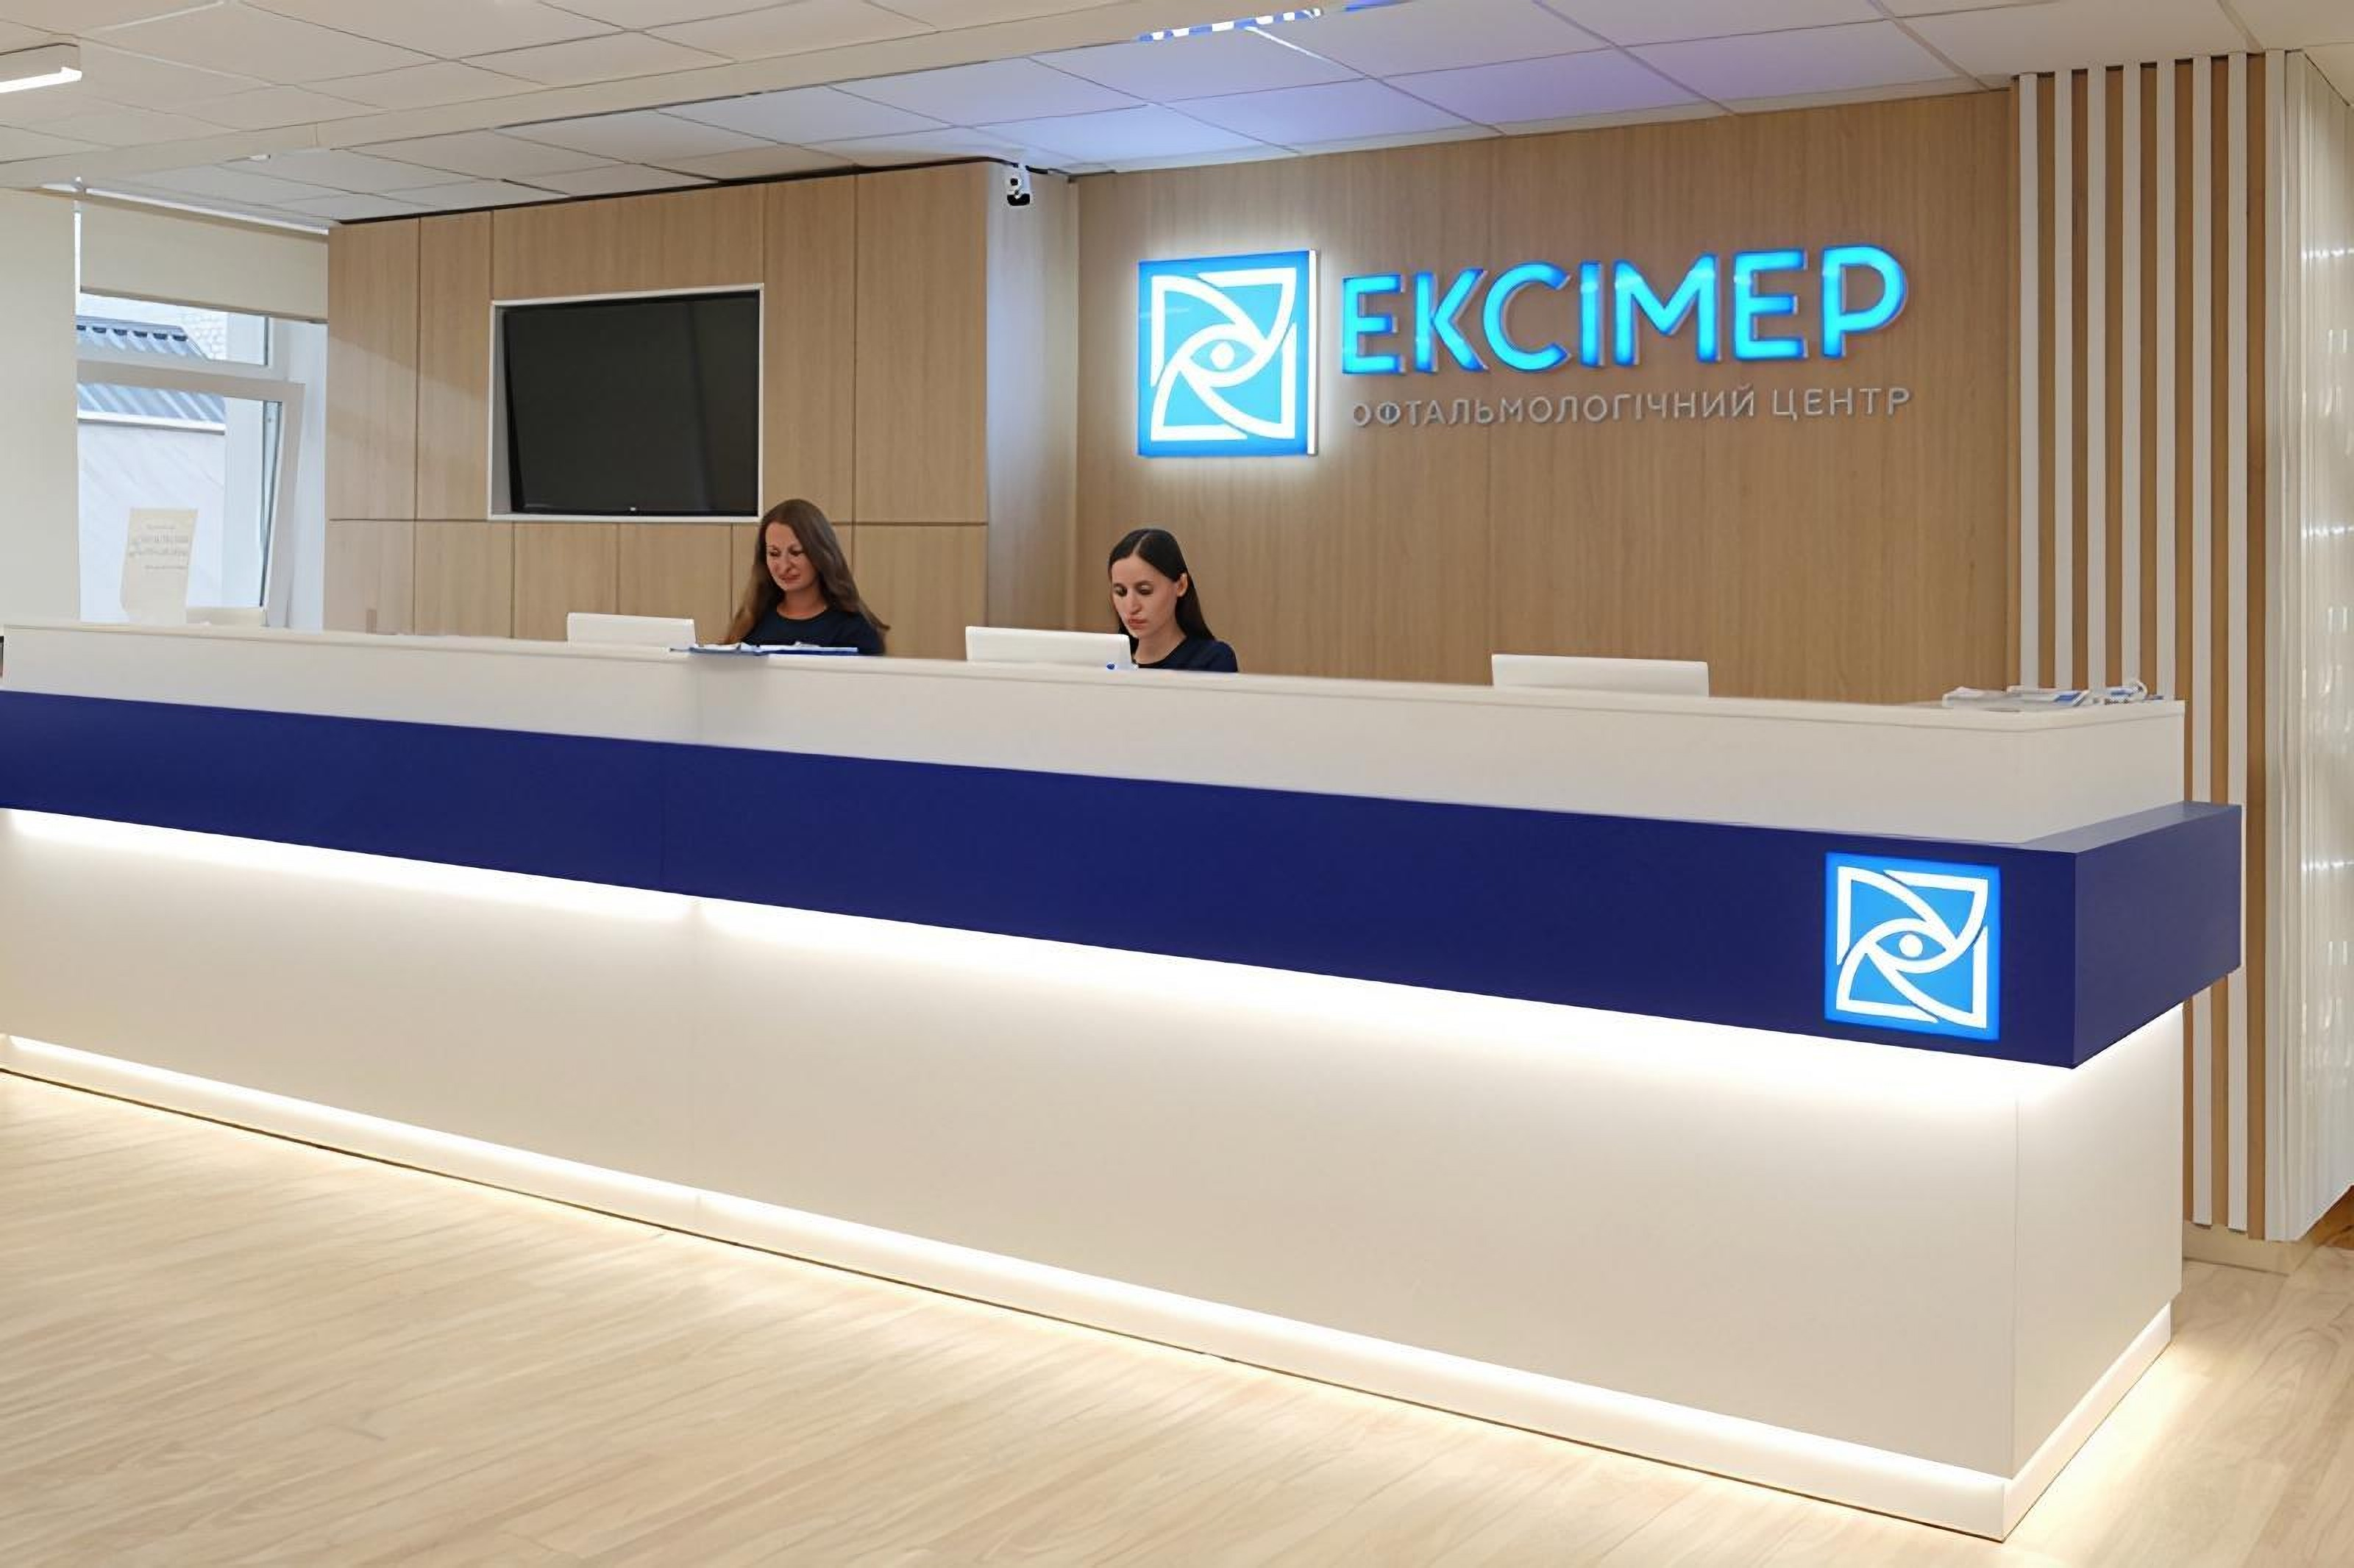 The receptionist's desk at the Ophthalmology Center Excimer Kiev